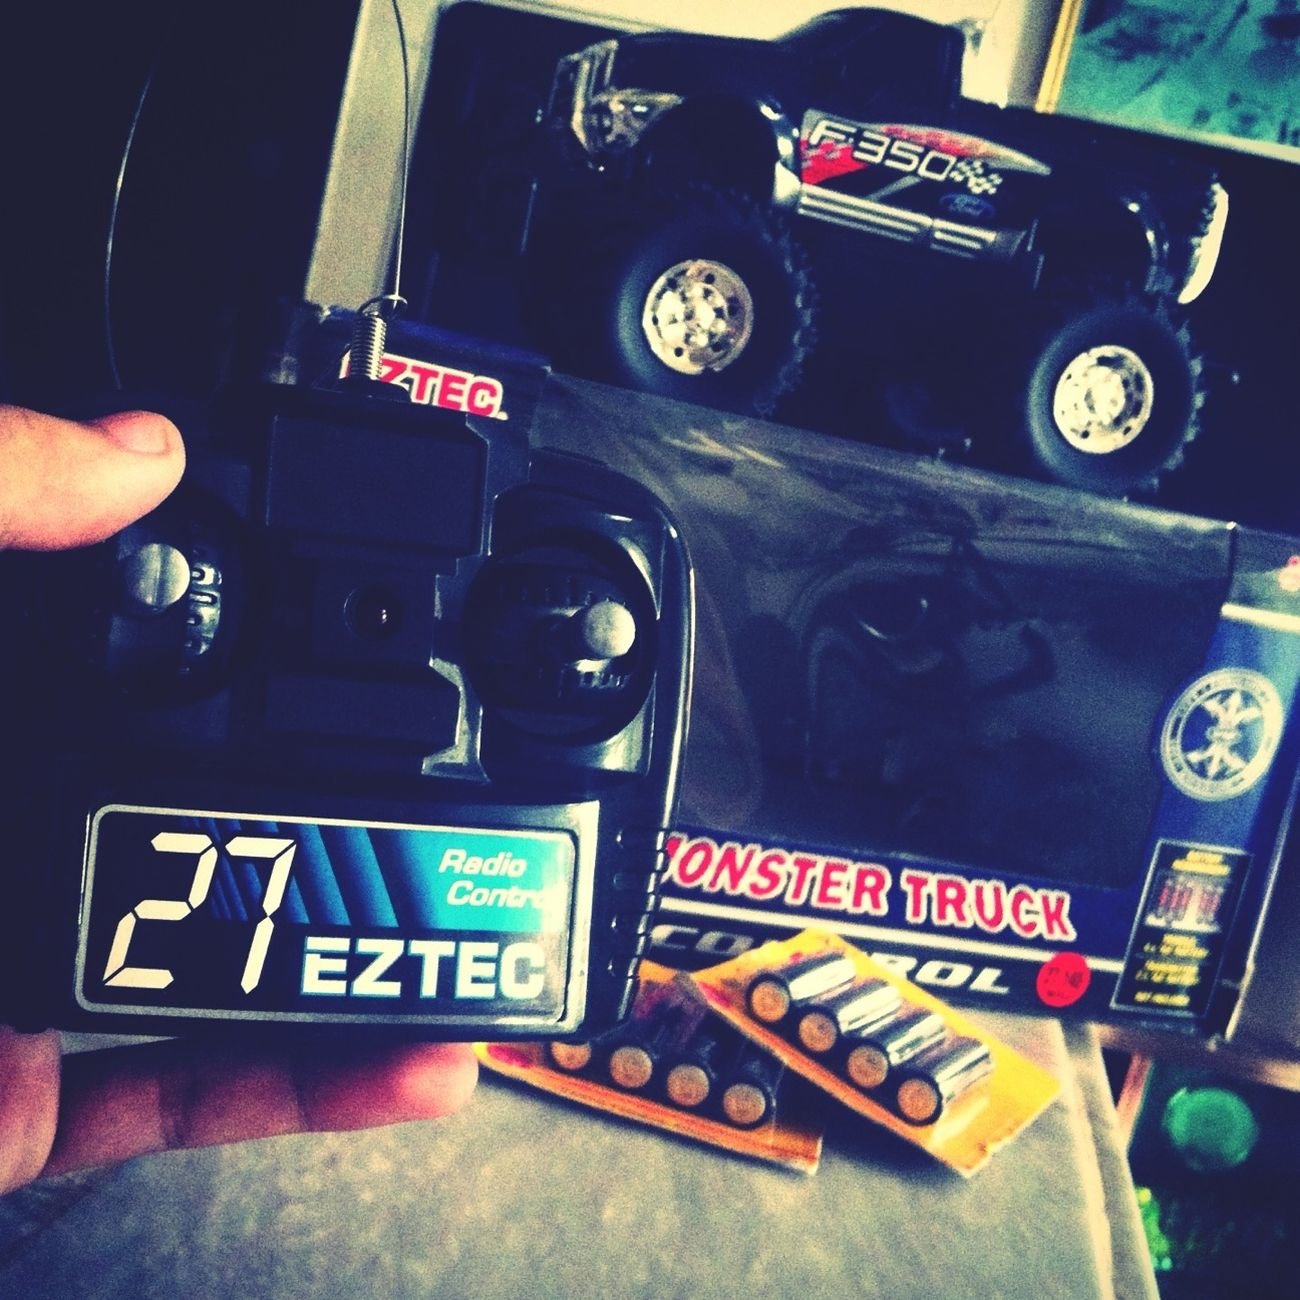 Got Home To This. My New EZTEC 1:18 Scale Monster Truck Radio Ctrl. Www.ez-tec.com